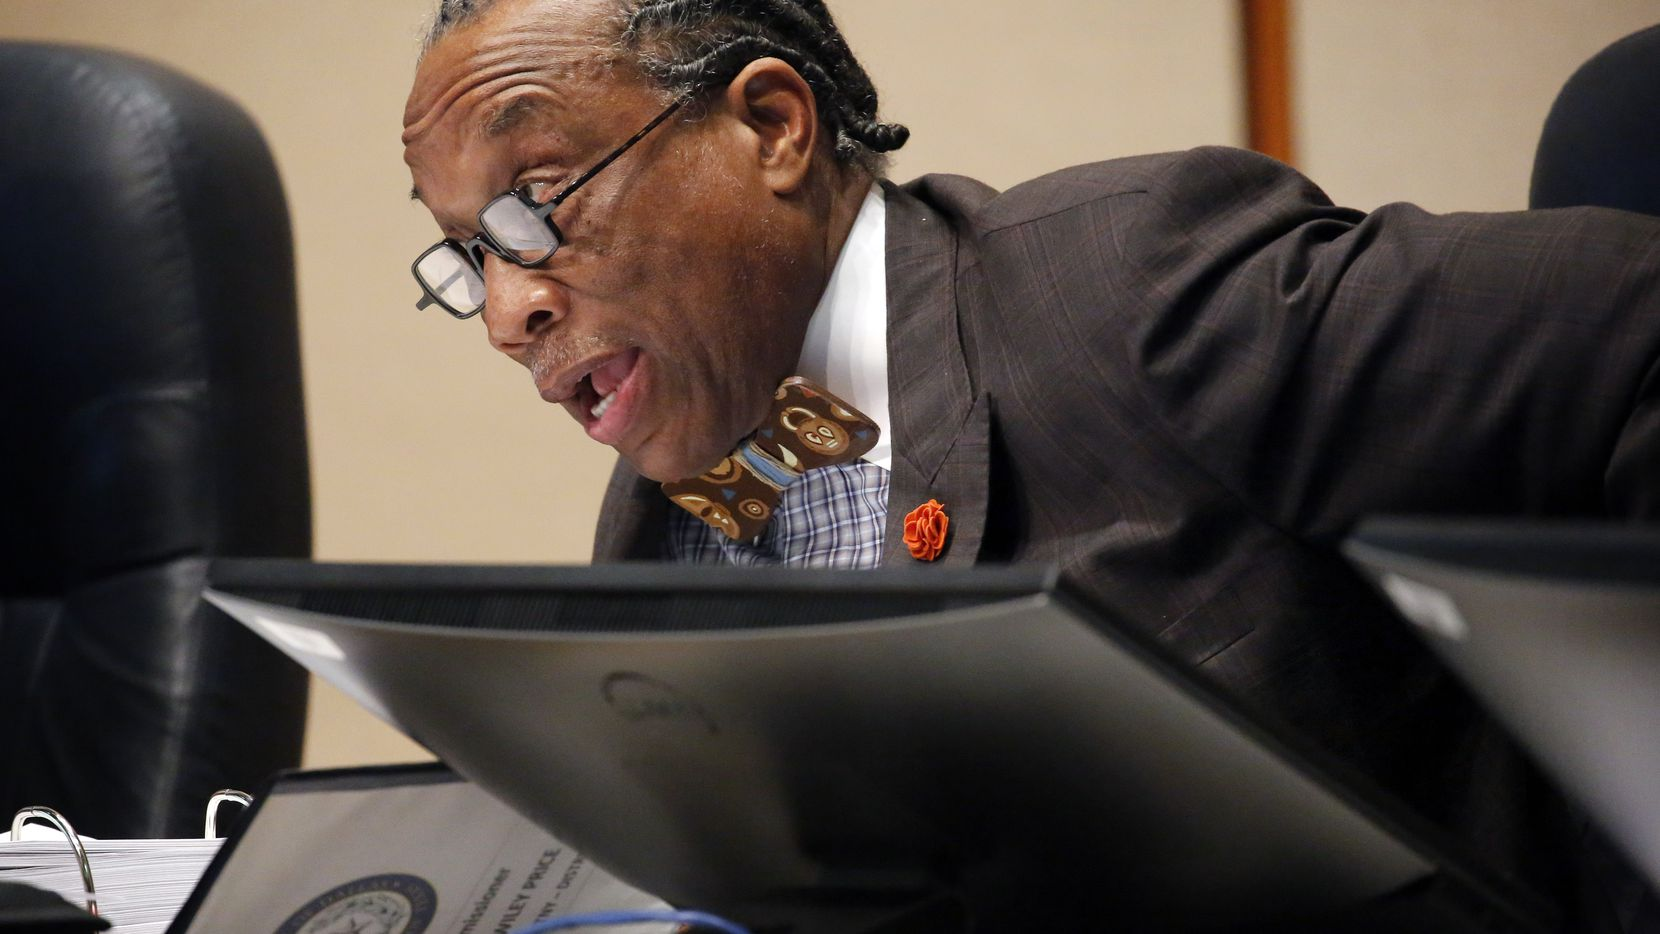 Dallas County Commissioner John Wiley Price at a Feb. 3 meeting of the Dallas County commissioners court. (Tom Fox/The Dallas Morning News)